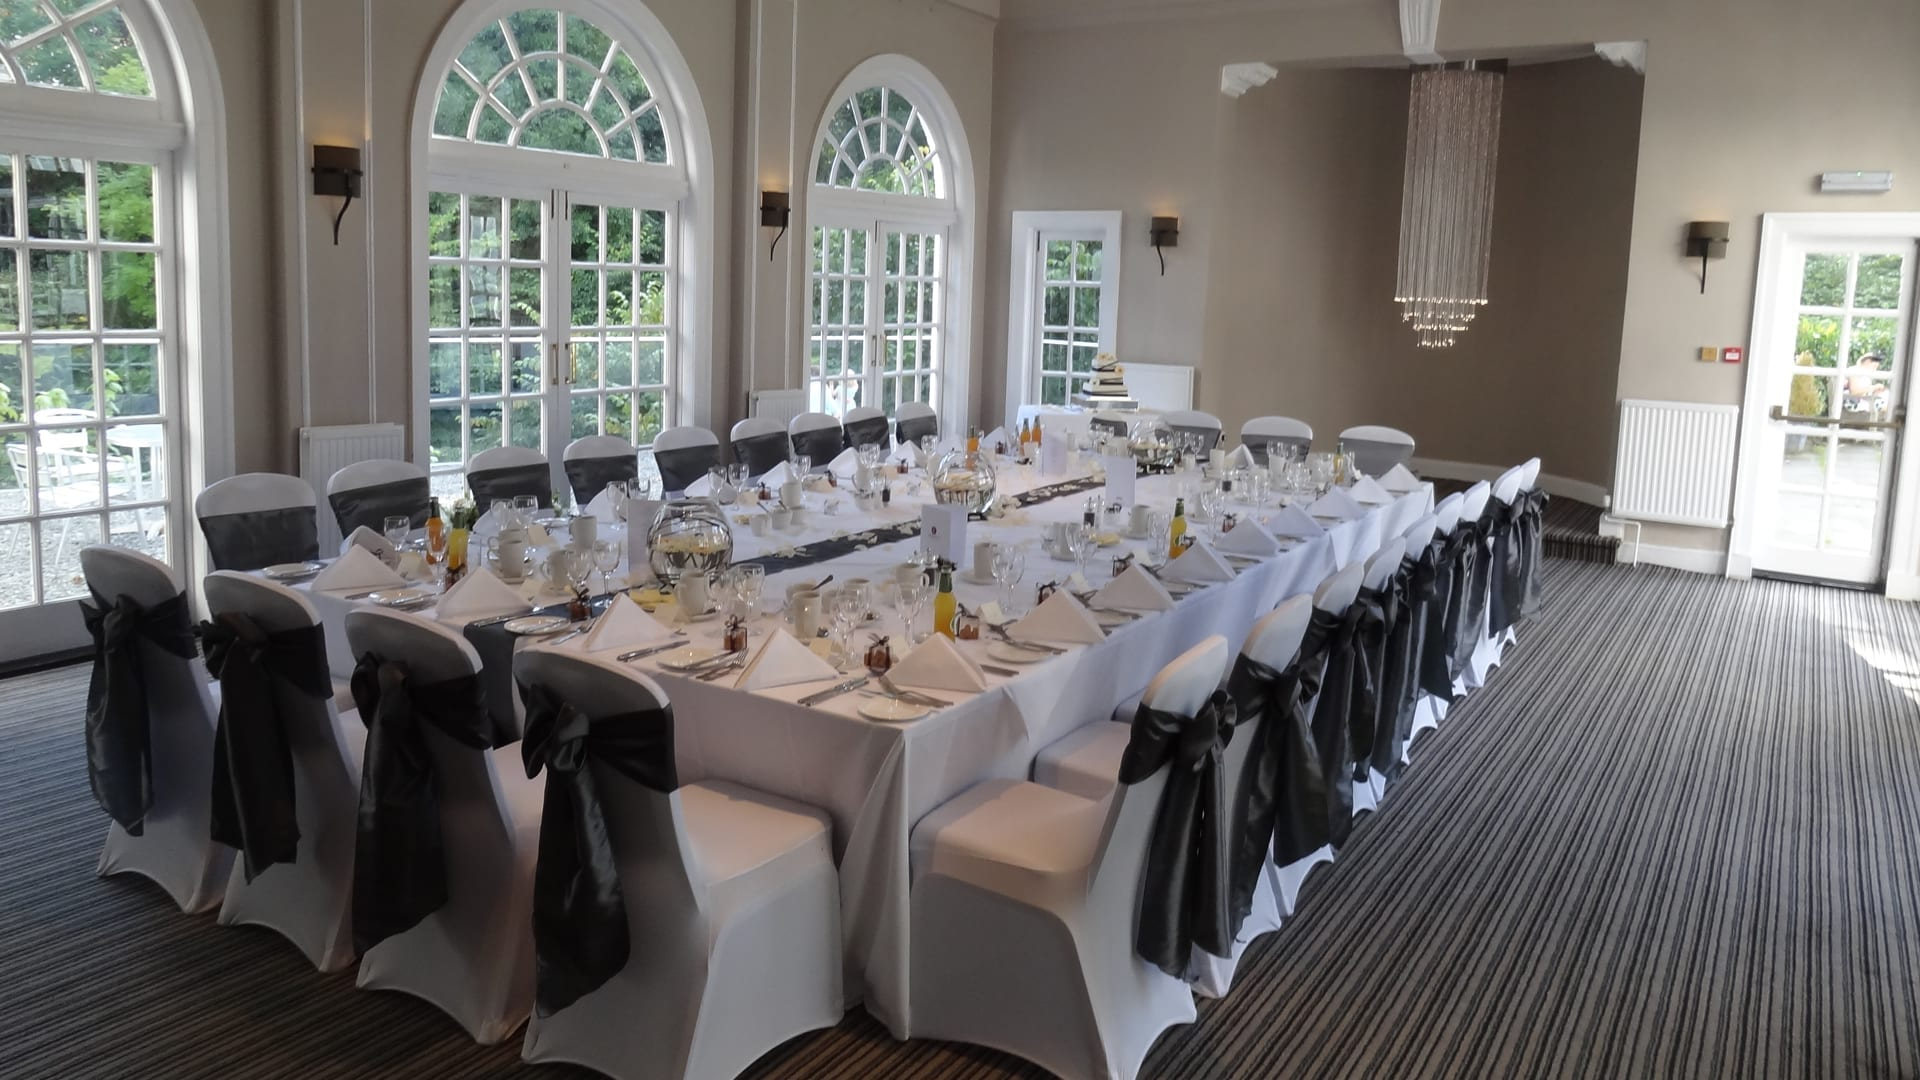 A wedding breakfast in the Elibank Suite at Barony Castle